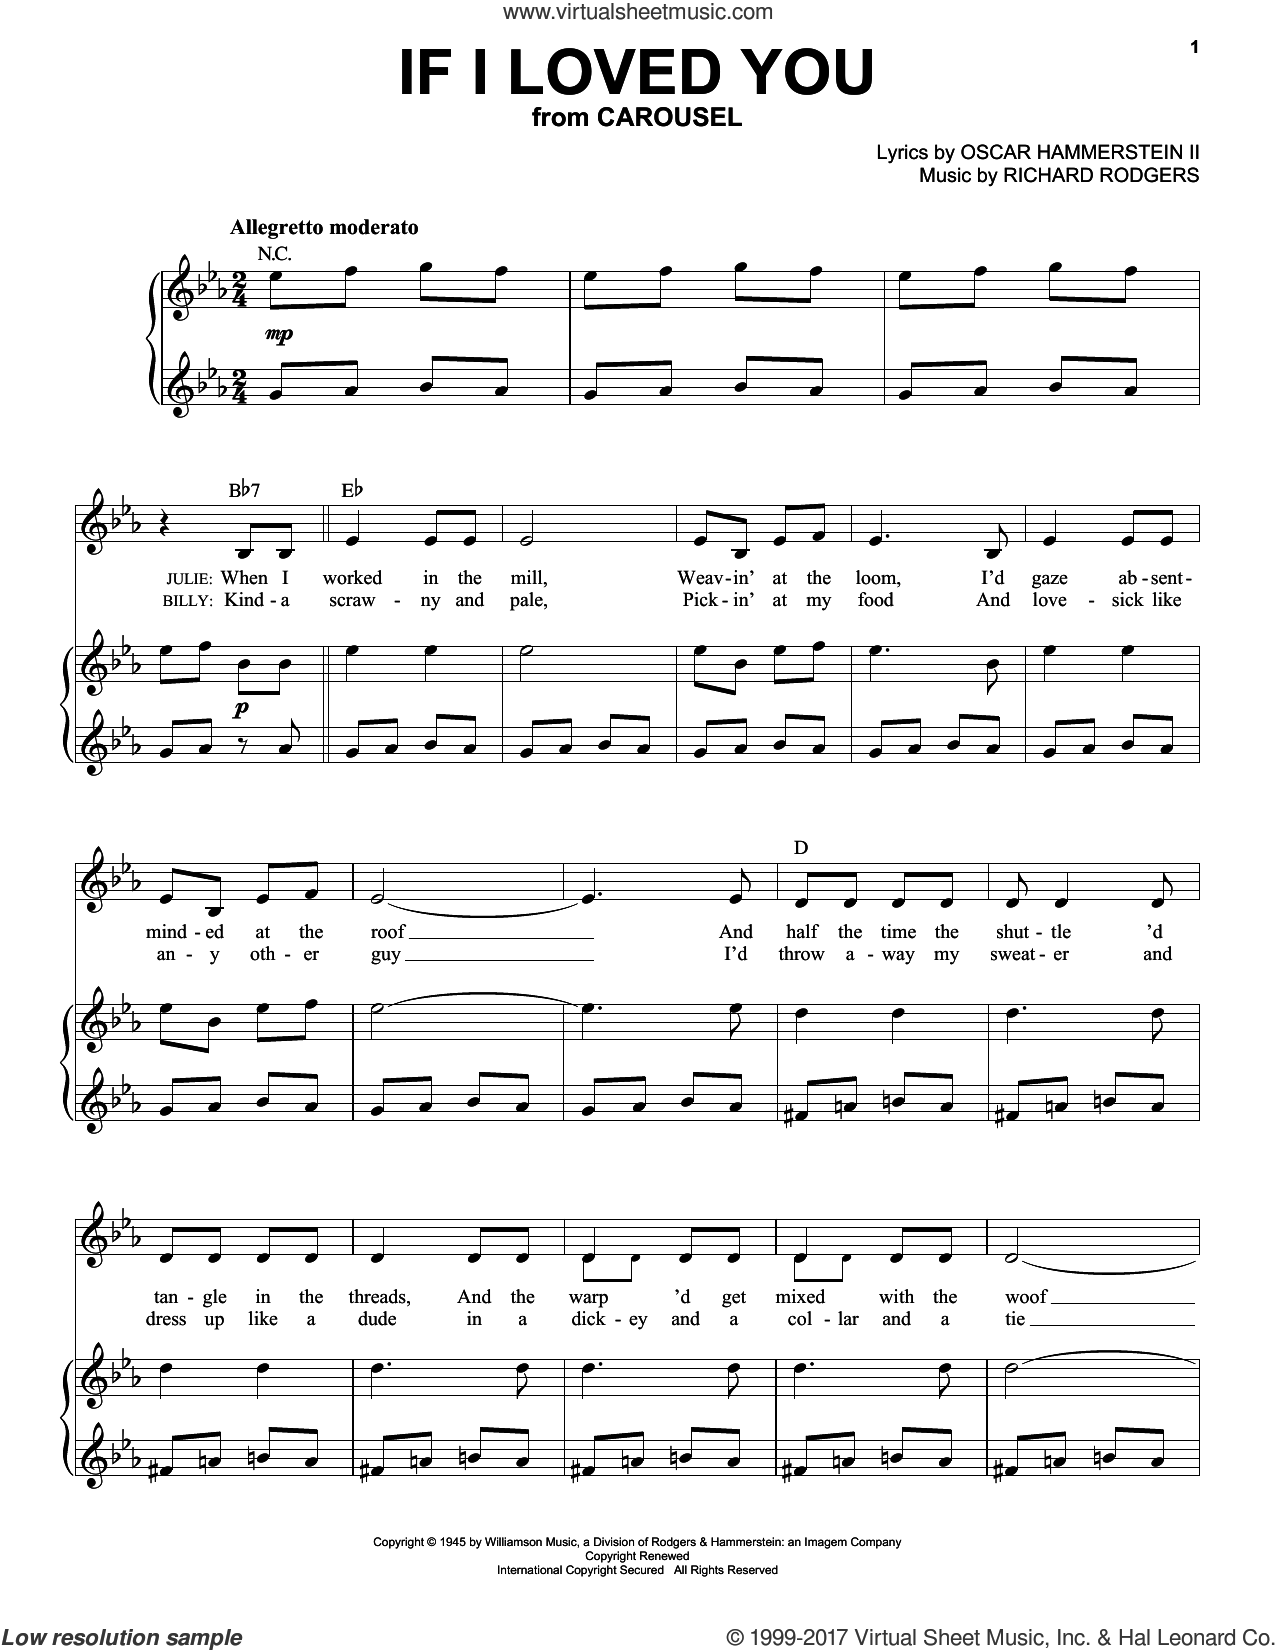 If I Loved You sheet music for voice and piano (High ) by Rodgers & Hammerstein, Oscar II Hammerstein and Richard Rodgers. Score Image Preview.